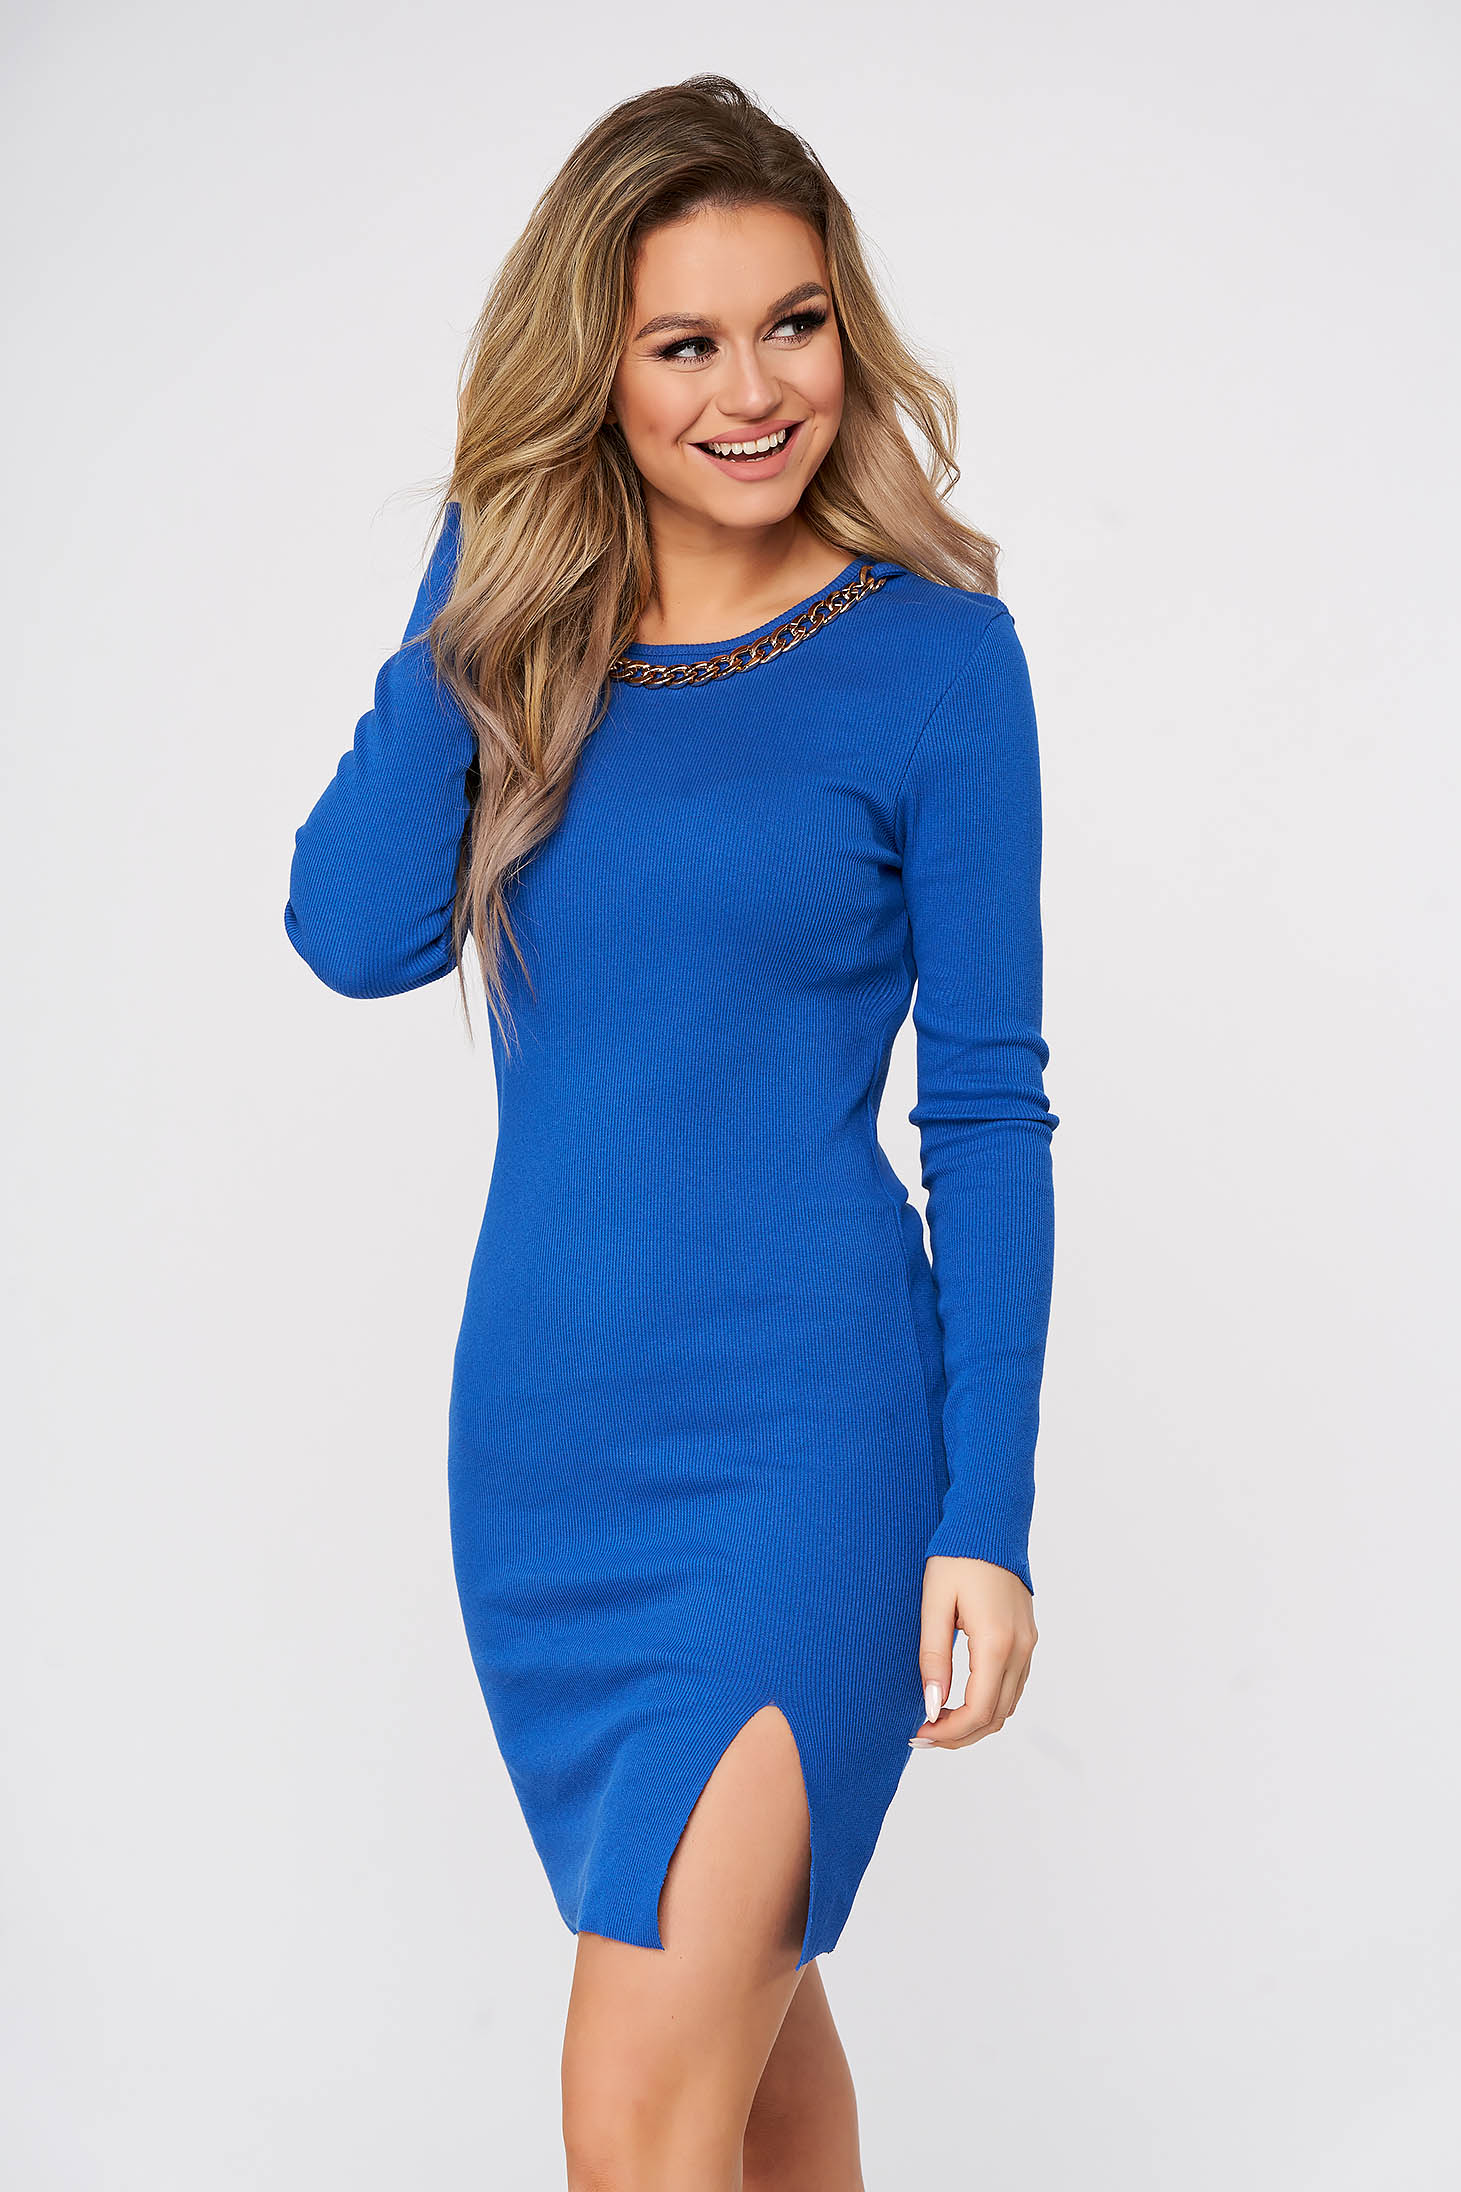 Blue dress casual short cut pencil accessorized with chain from striped fabric